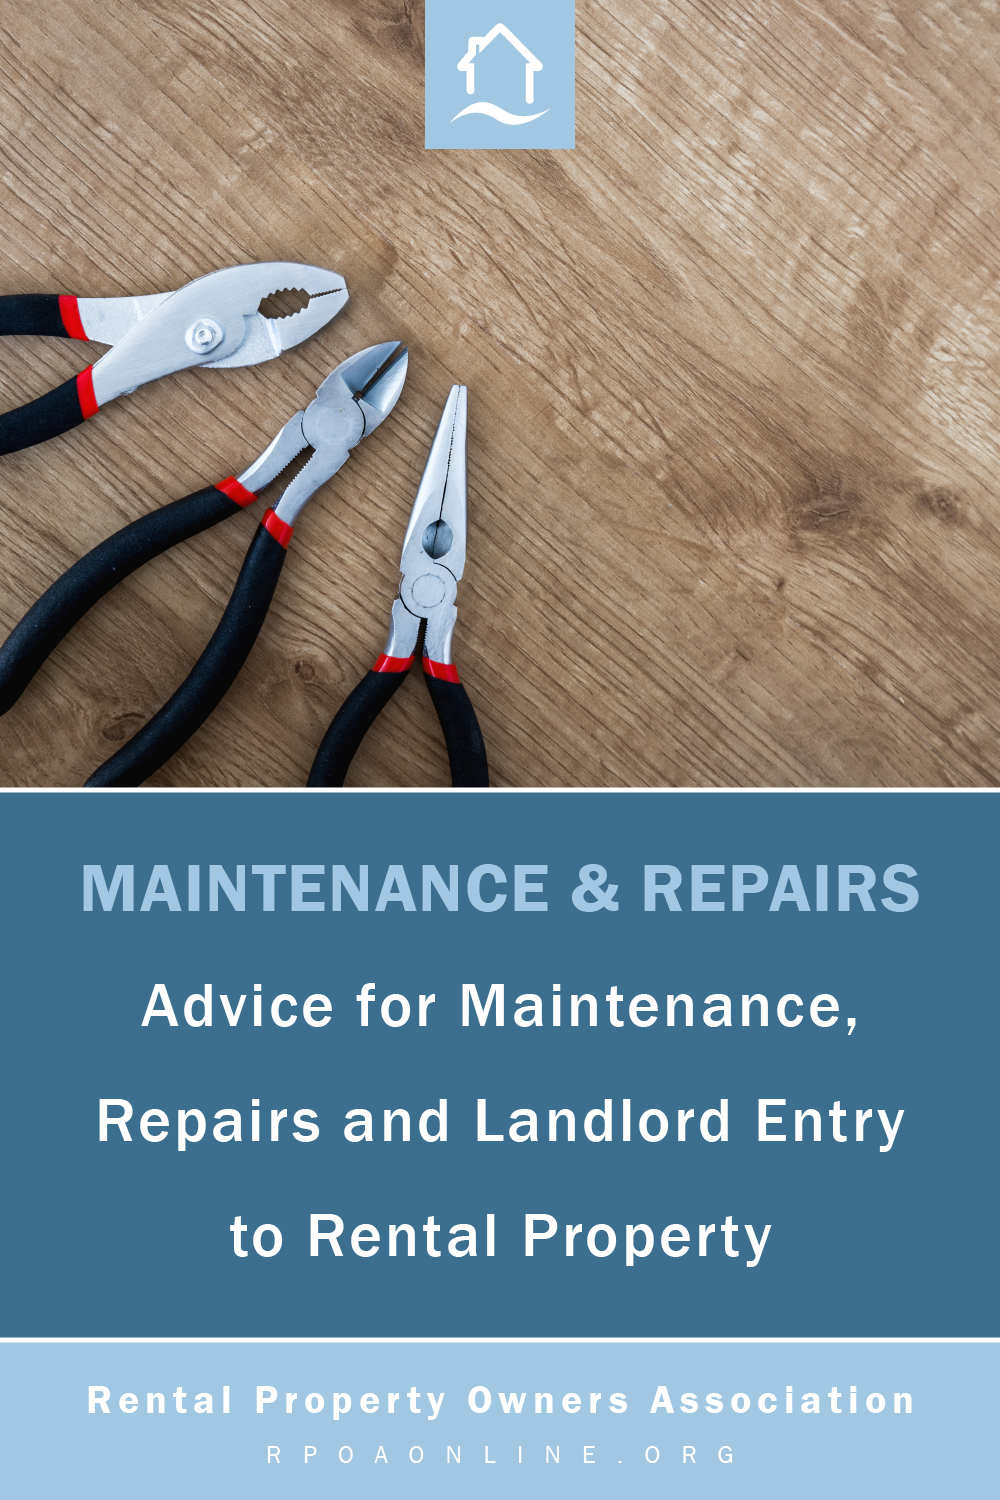 Repairs, Maintenance, and Entry to Rental Property (With